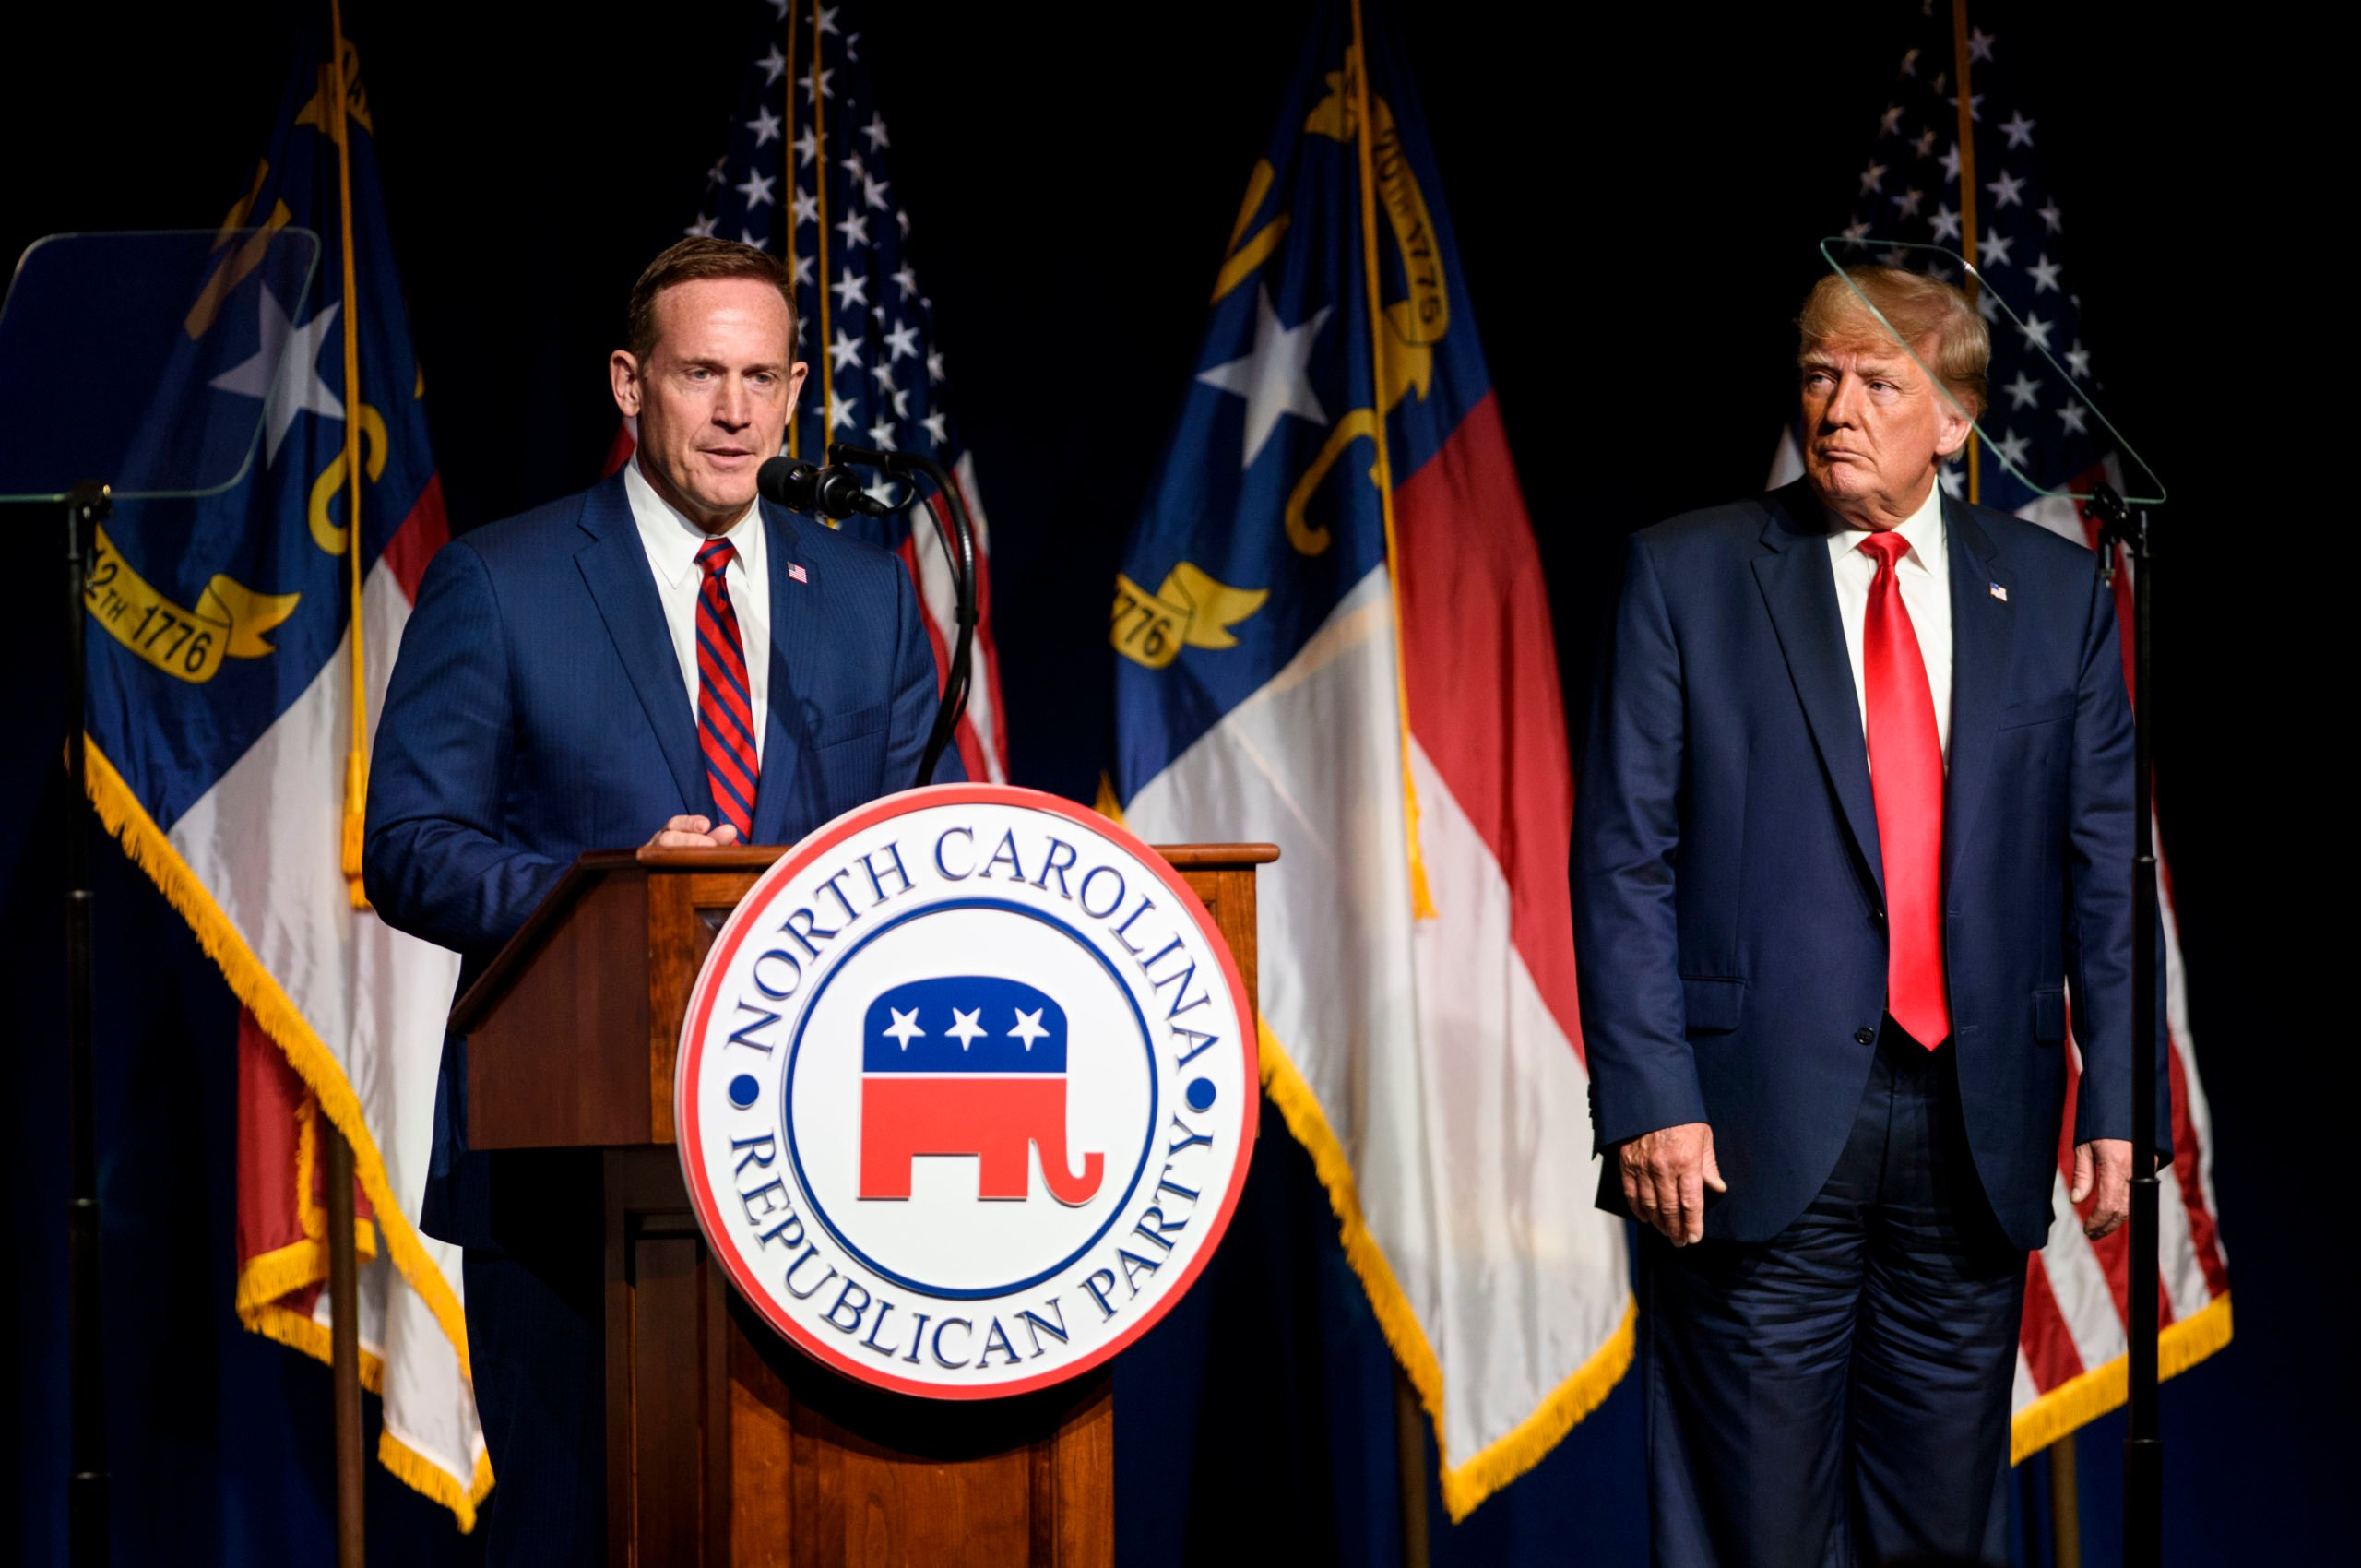 Former U.S. President Donald Trump listens to Ted Budd announce he's running for the NC Senate at the NCGOP state convention on June 5, 2021 in Greenville, North Carolina. (Melissa Sue Gerrits/Getty Images)